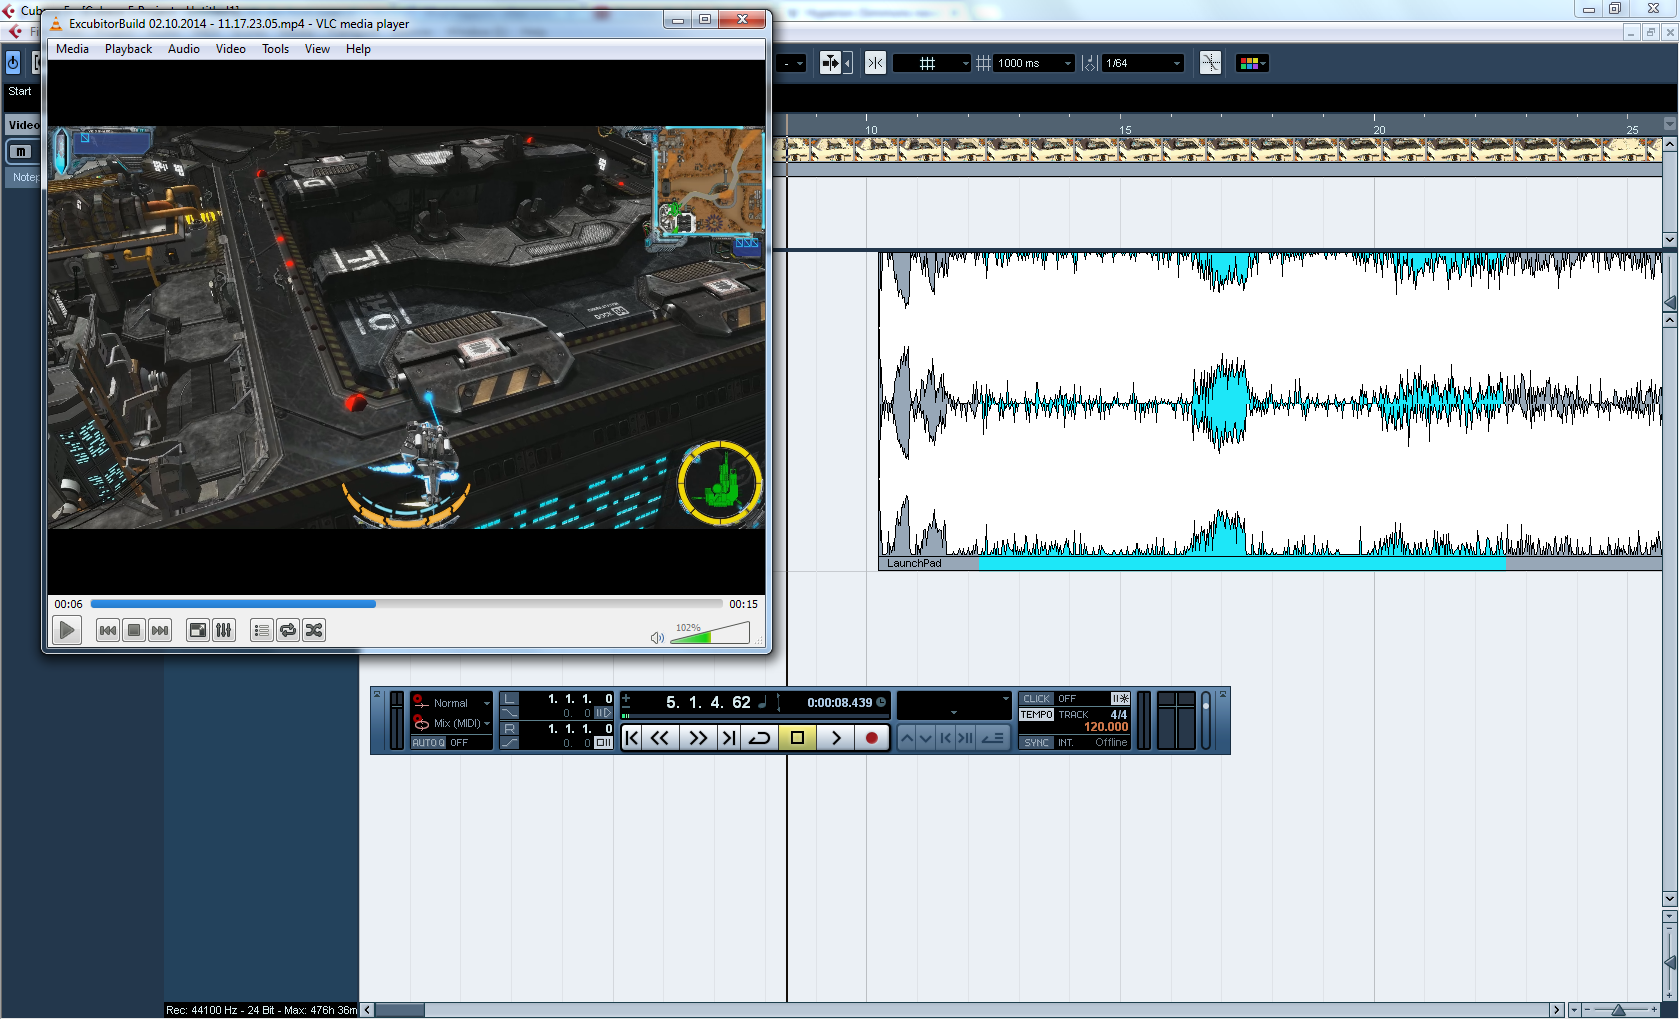 Cubase and the Excbutor clip